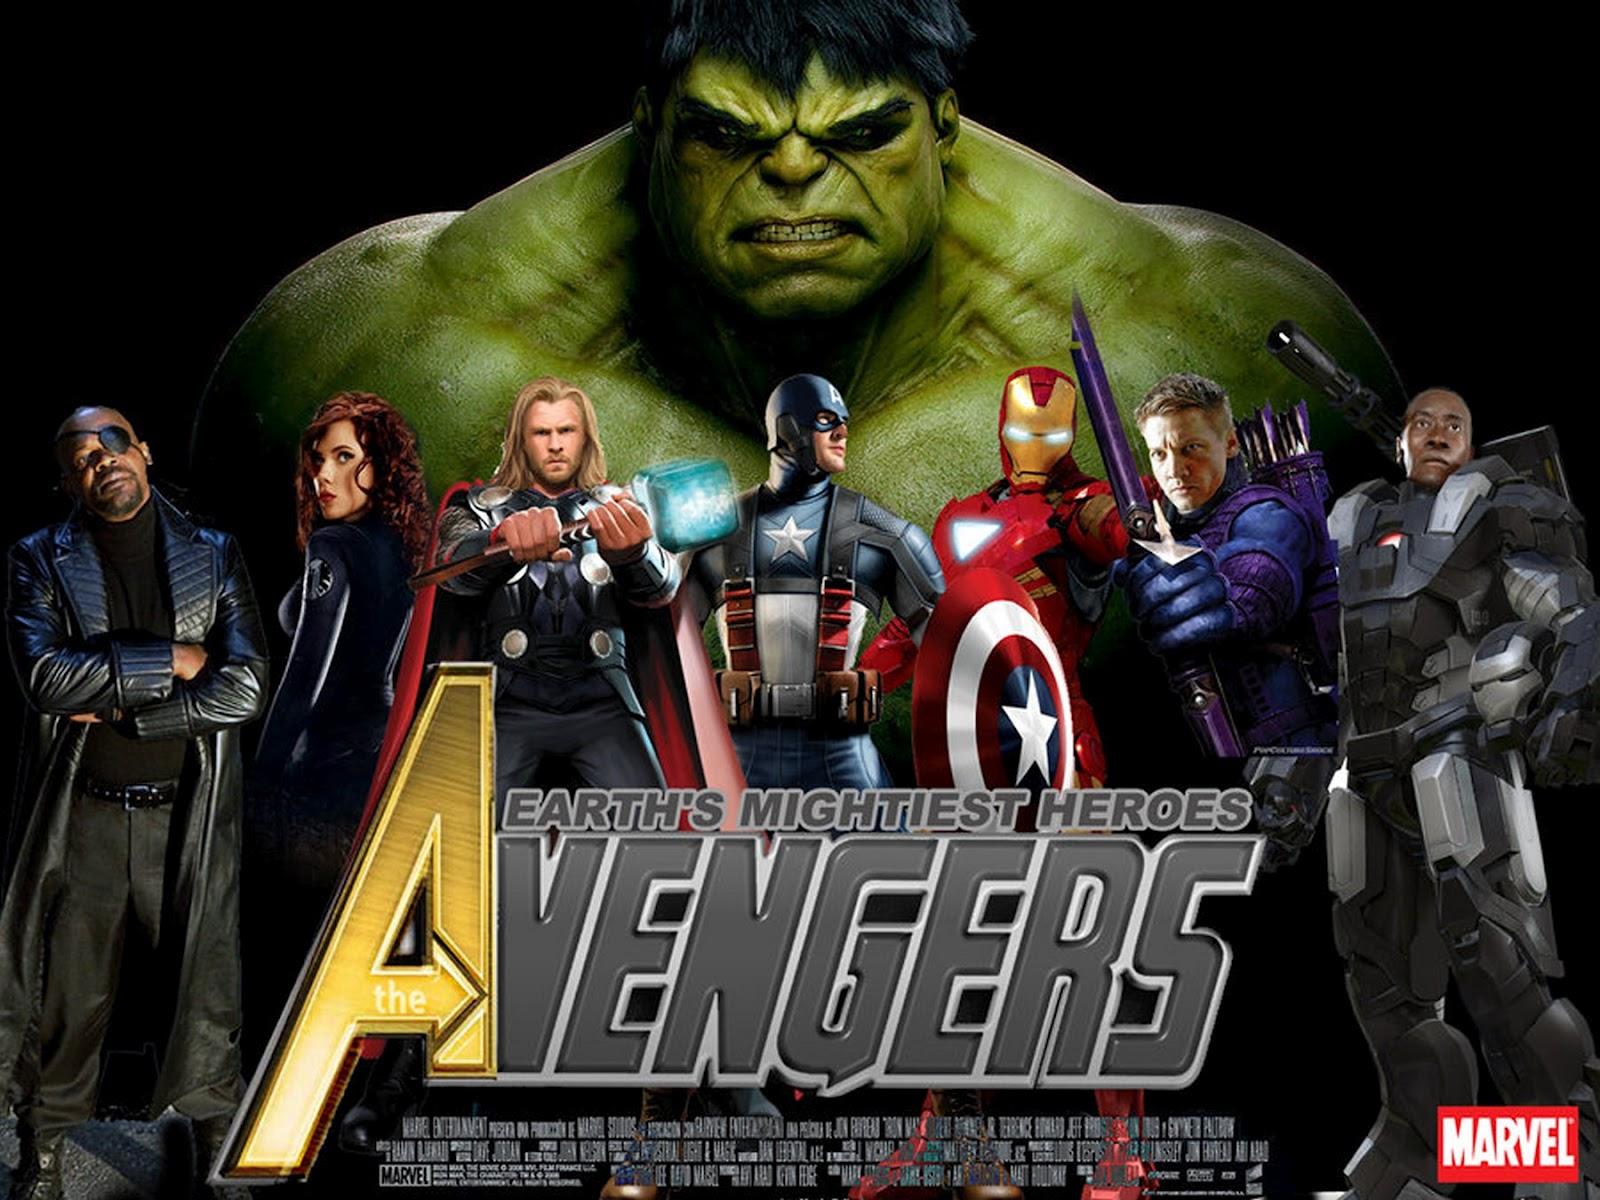 The Avengers Movie: Pillar Of Enoch Ministry Blog: The Spiritual Messages